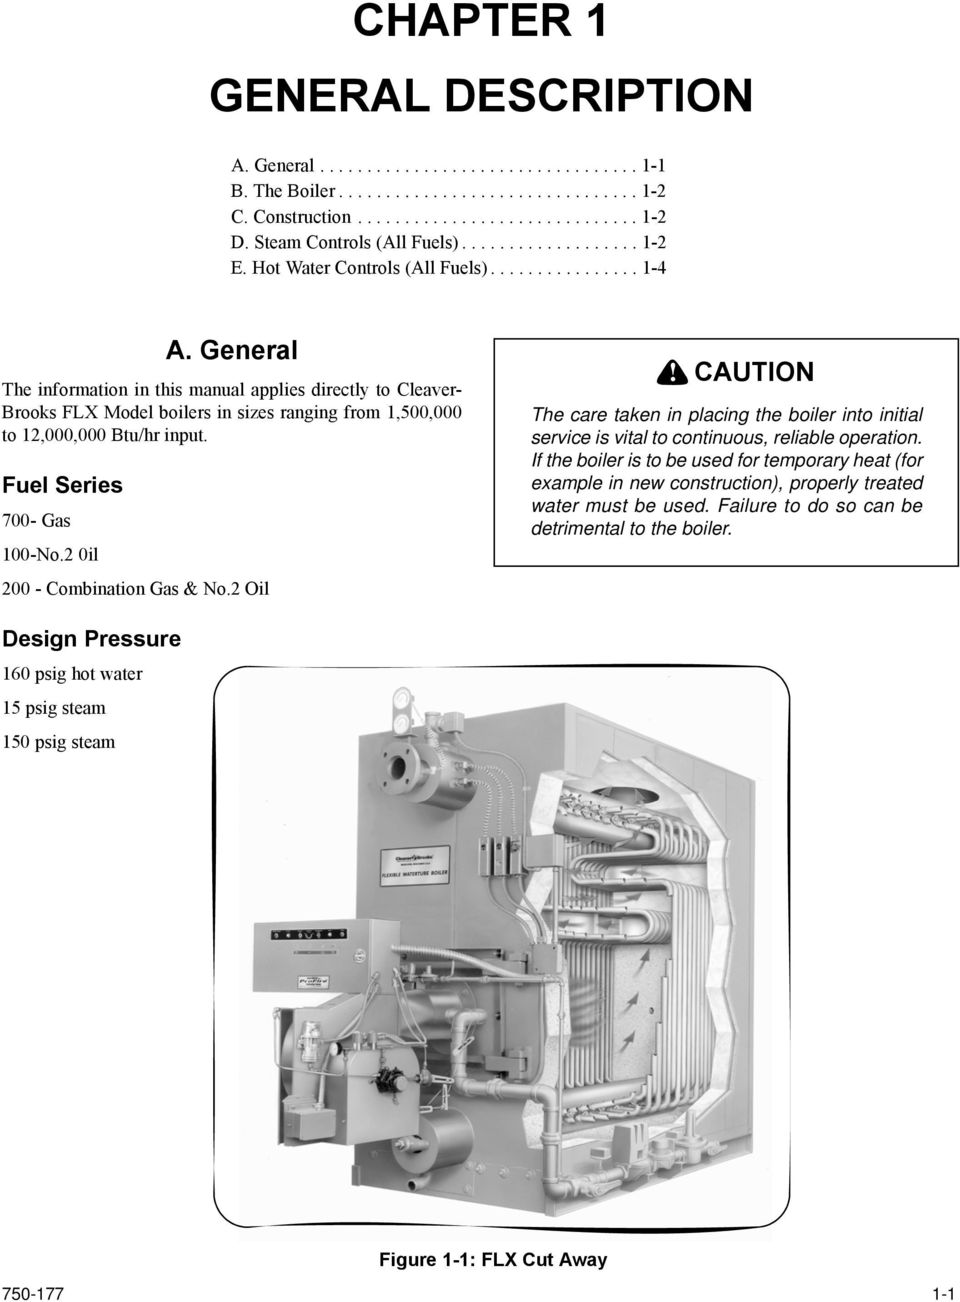 Model Flx Packaged Boiler Pdf Only After Td 2 Times Out Does The Normallyclosed Timedclosed General Information In This Manual Applies Directly To Cleaver Brooks Boilers